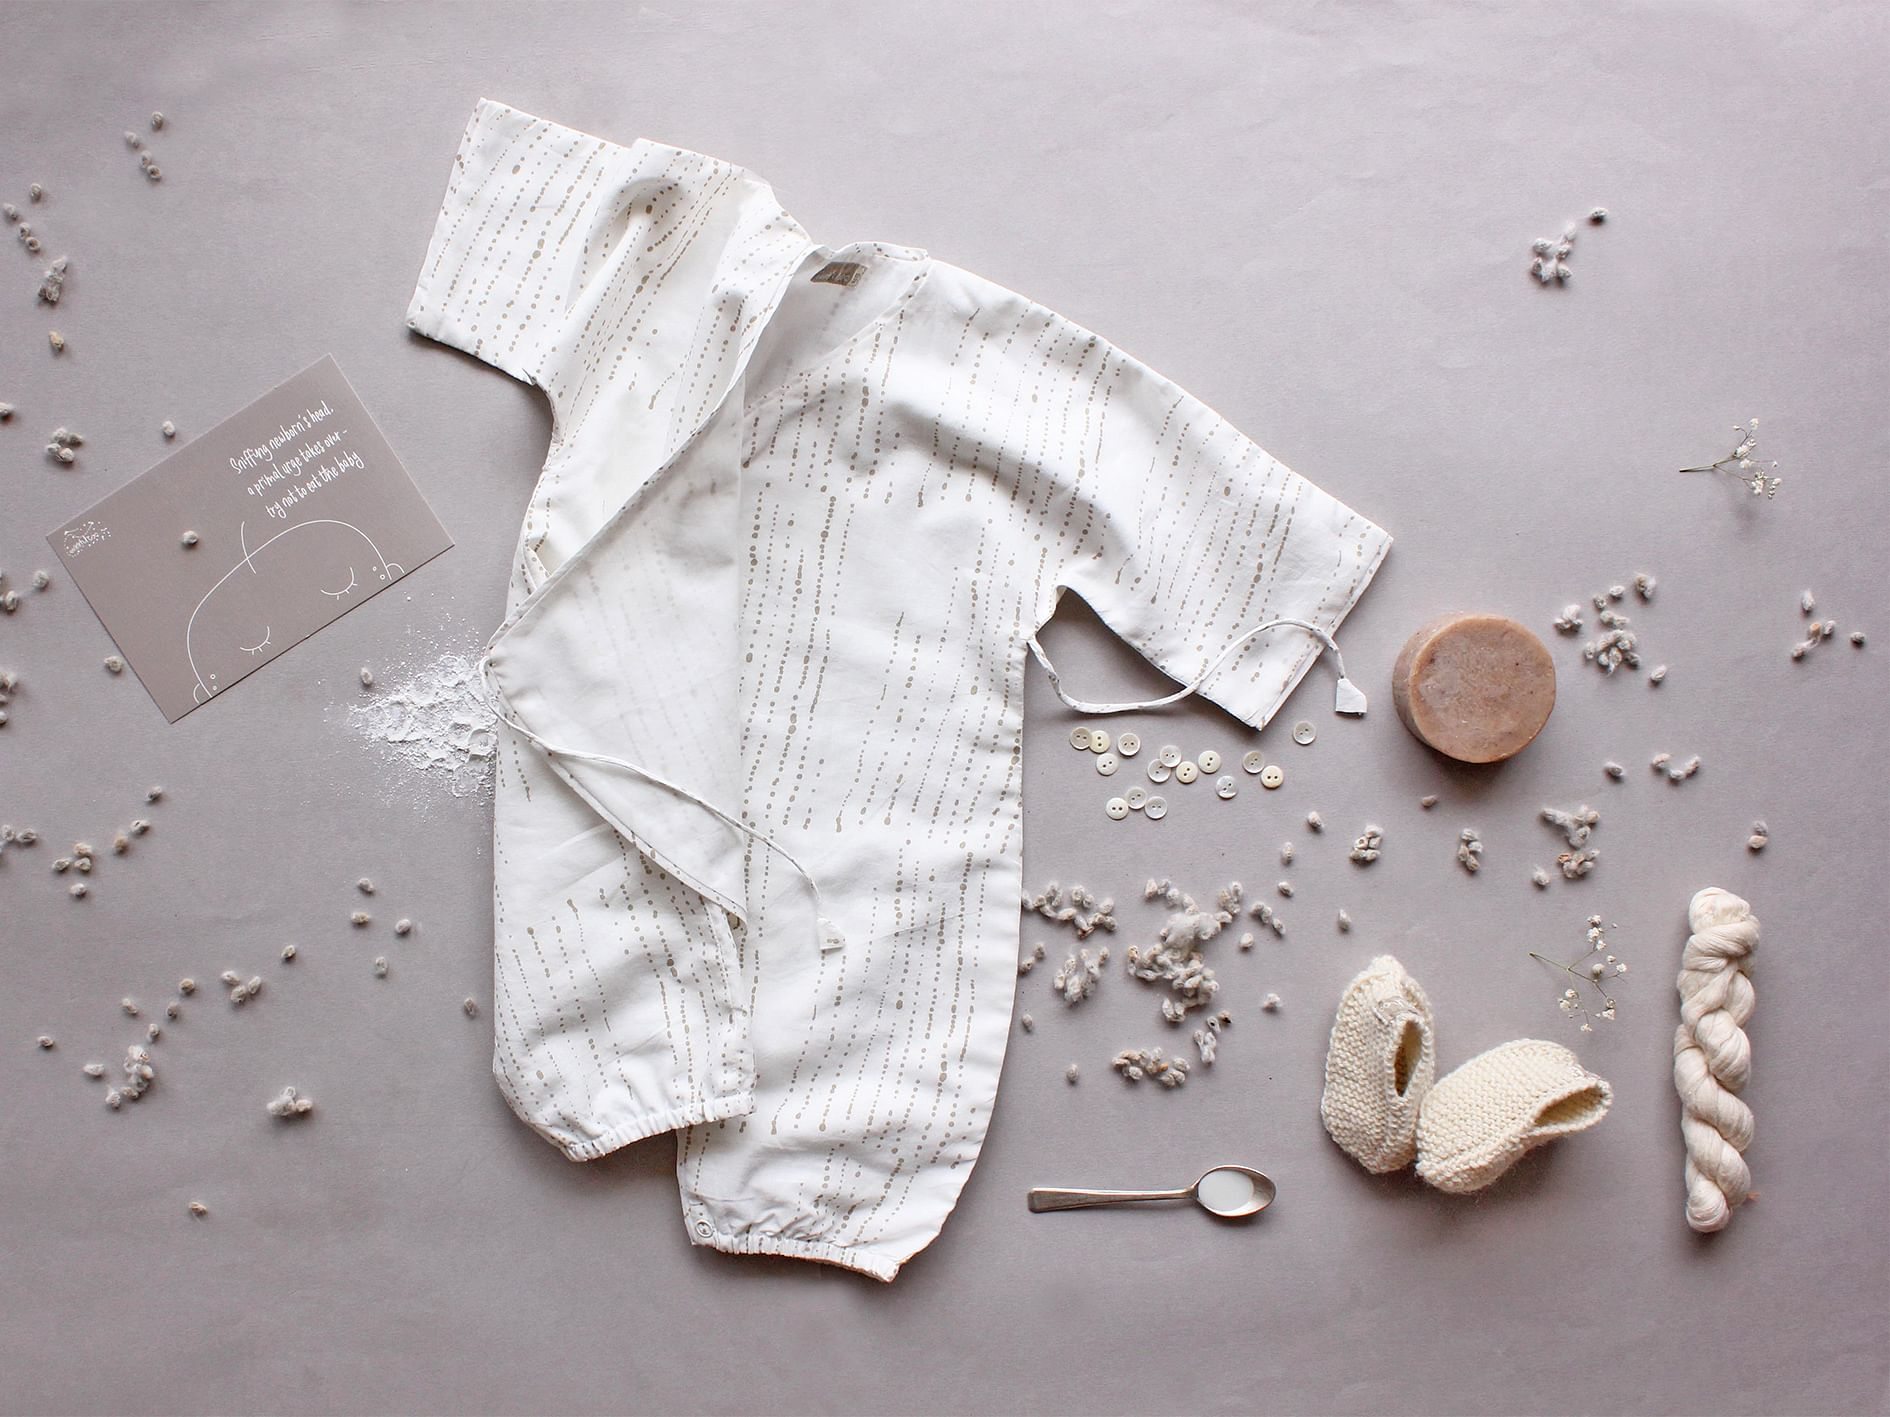 Synthetics Hurt Baby So Mom Makes All Natural Clothes